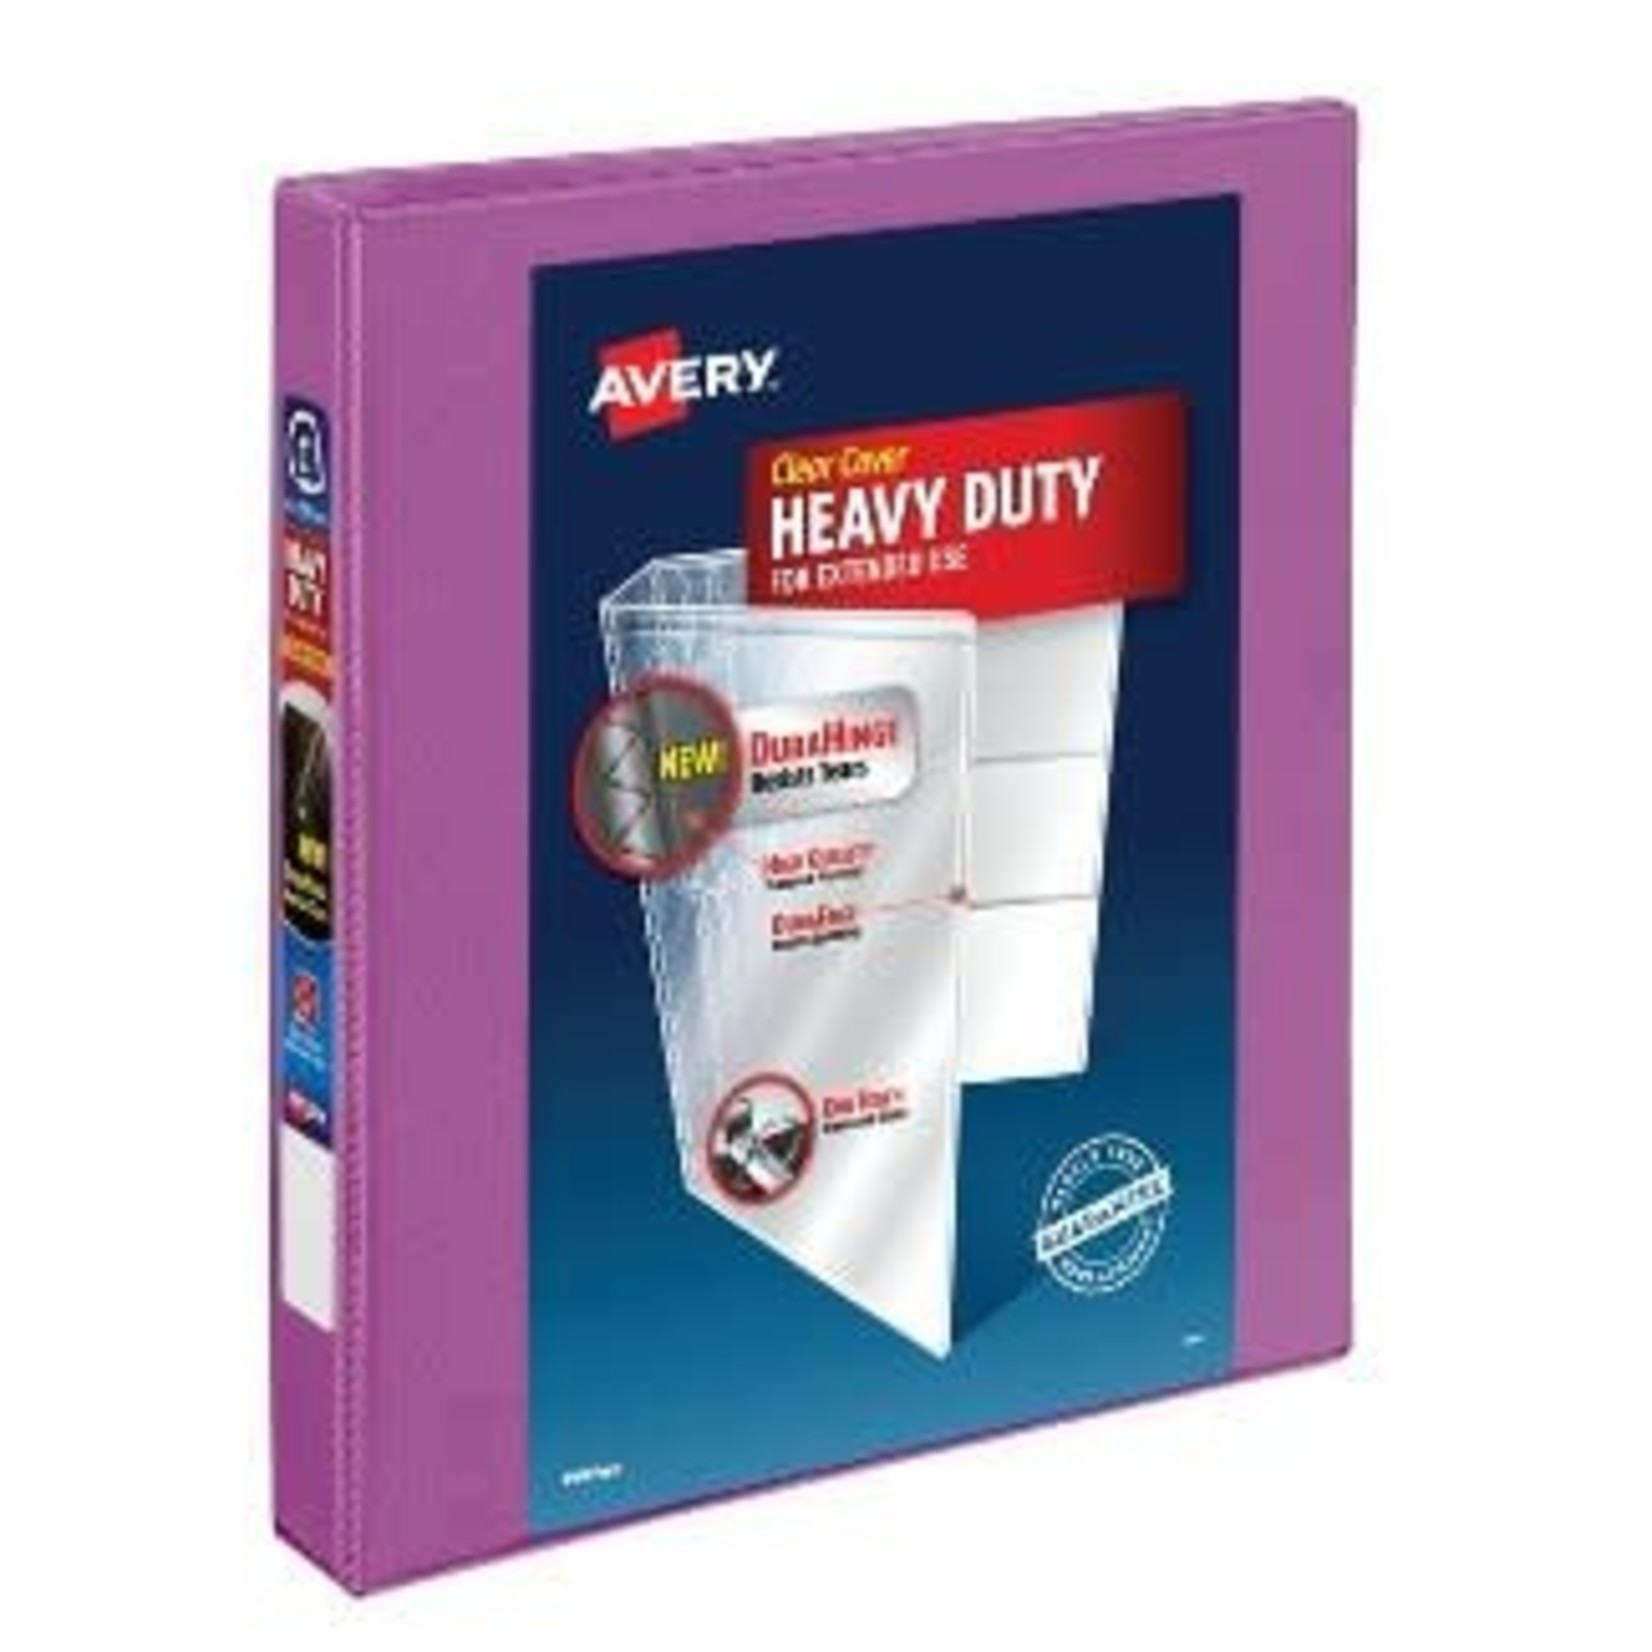 """Avery 1"""" Heavy Duty Ring Binder with Clear Cover, 8.5"""" x 11"""" - Orchid"""